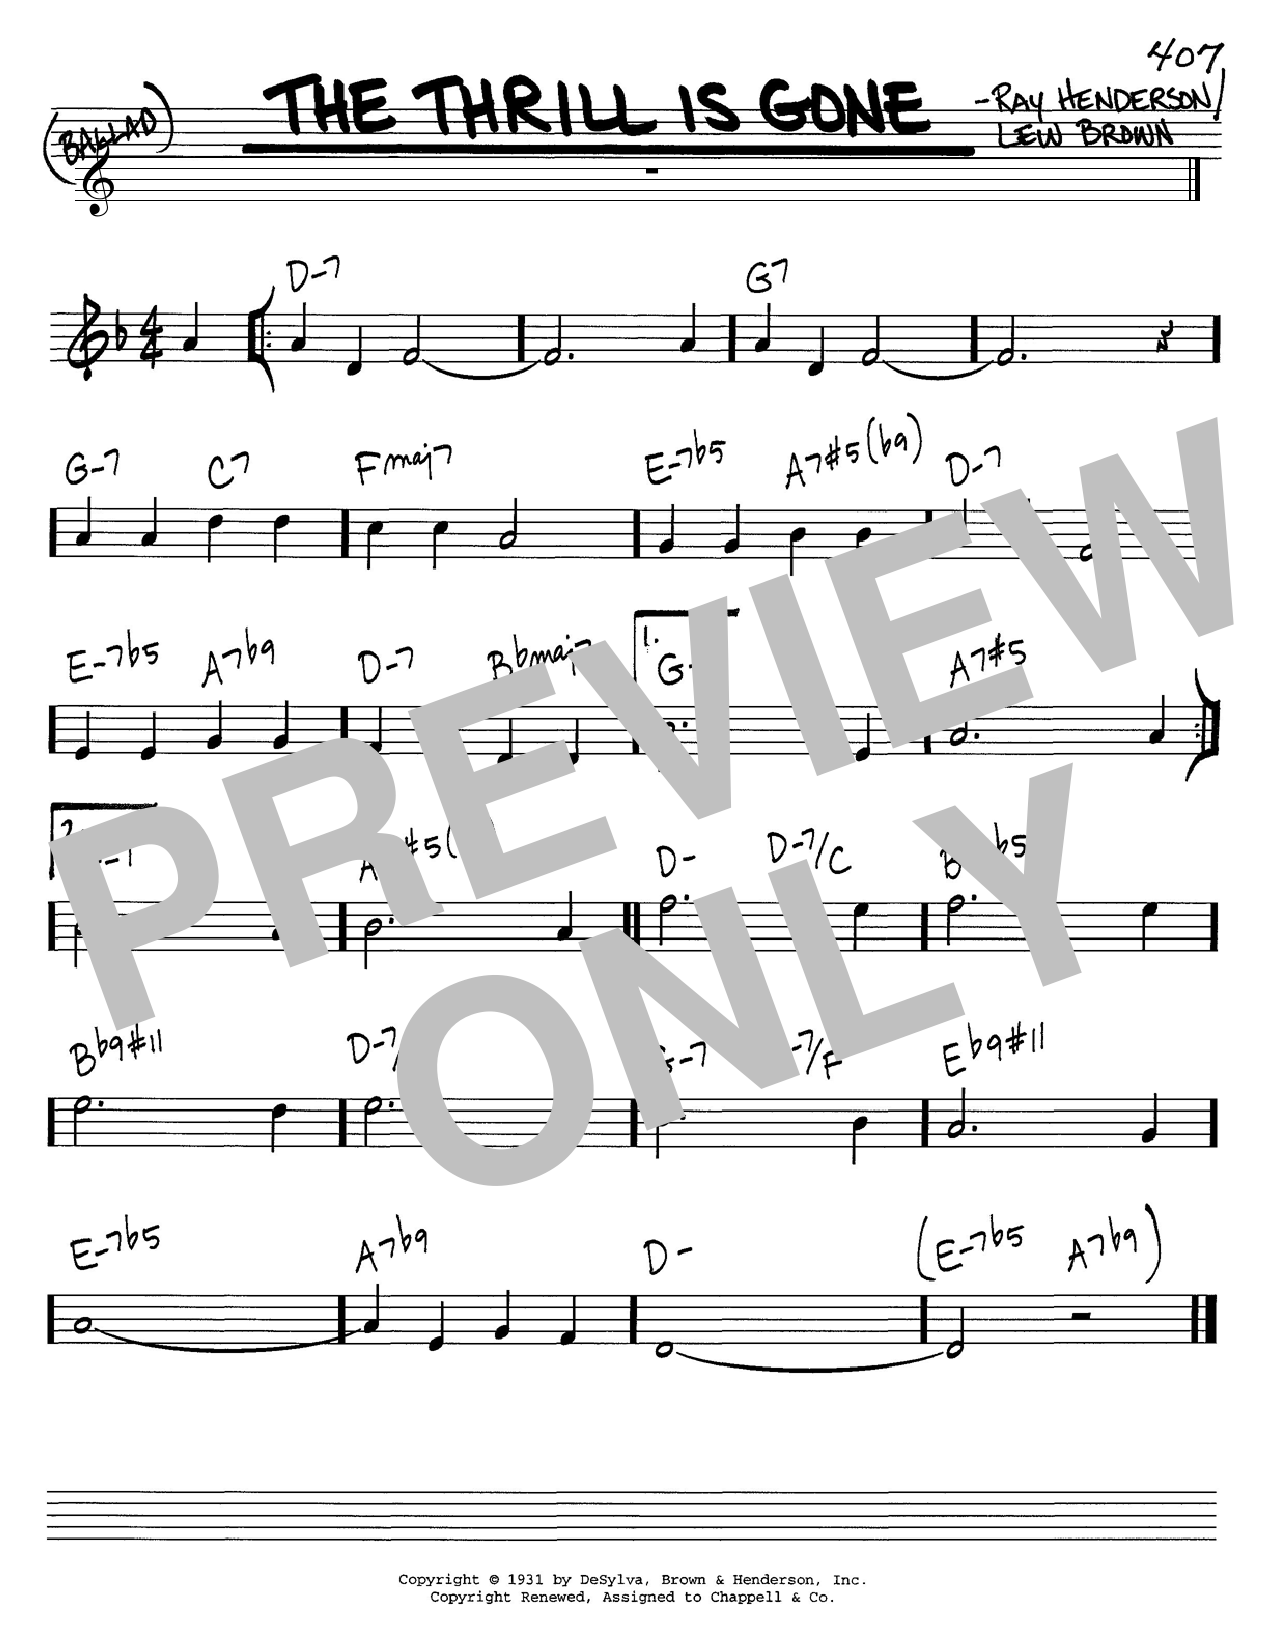 Lew Brown The Thrill Is Gone sheet music notes and chords. Download Printable PDF.